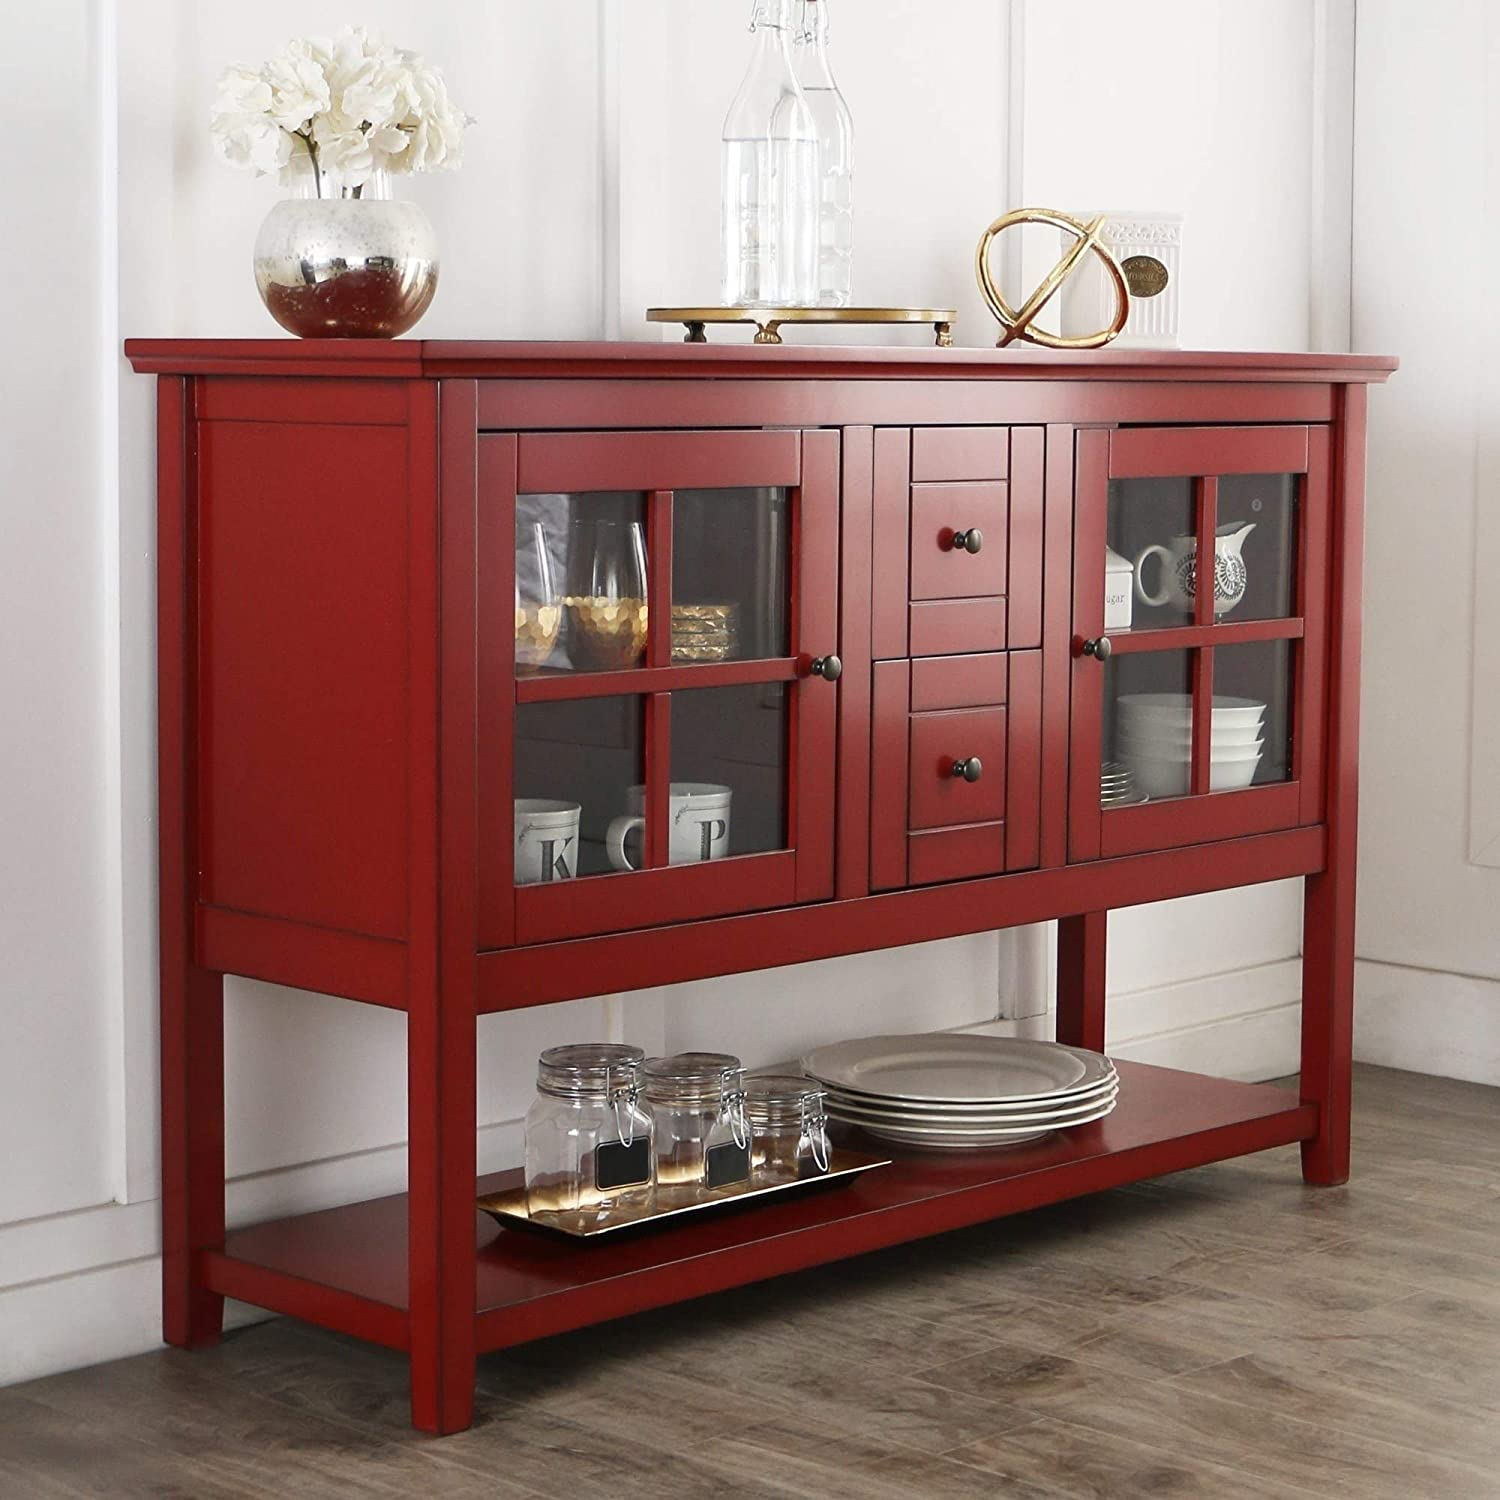 Awe Inspiring Amazon Com Modern Rustic Red Console Buffet Cabinet With 2 Download Free Architecture Designs Jebrpmadebymaigaardcom